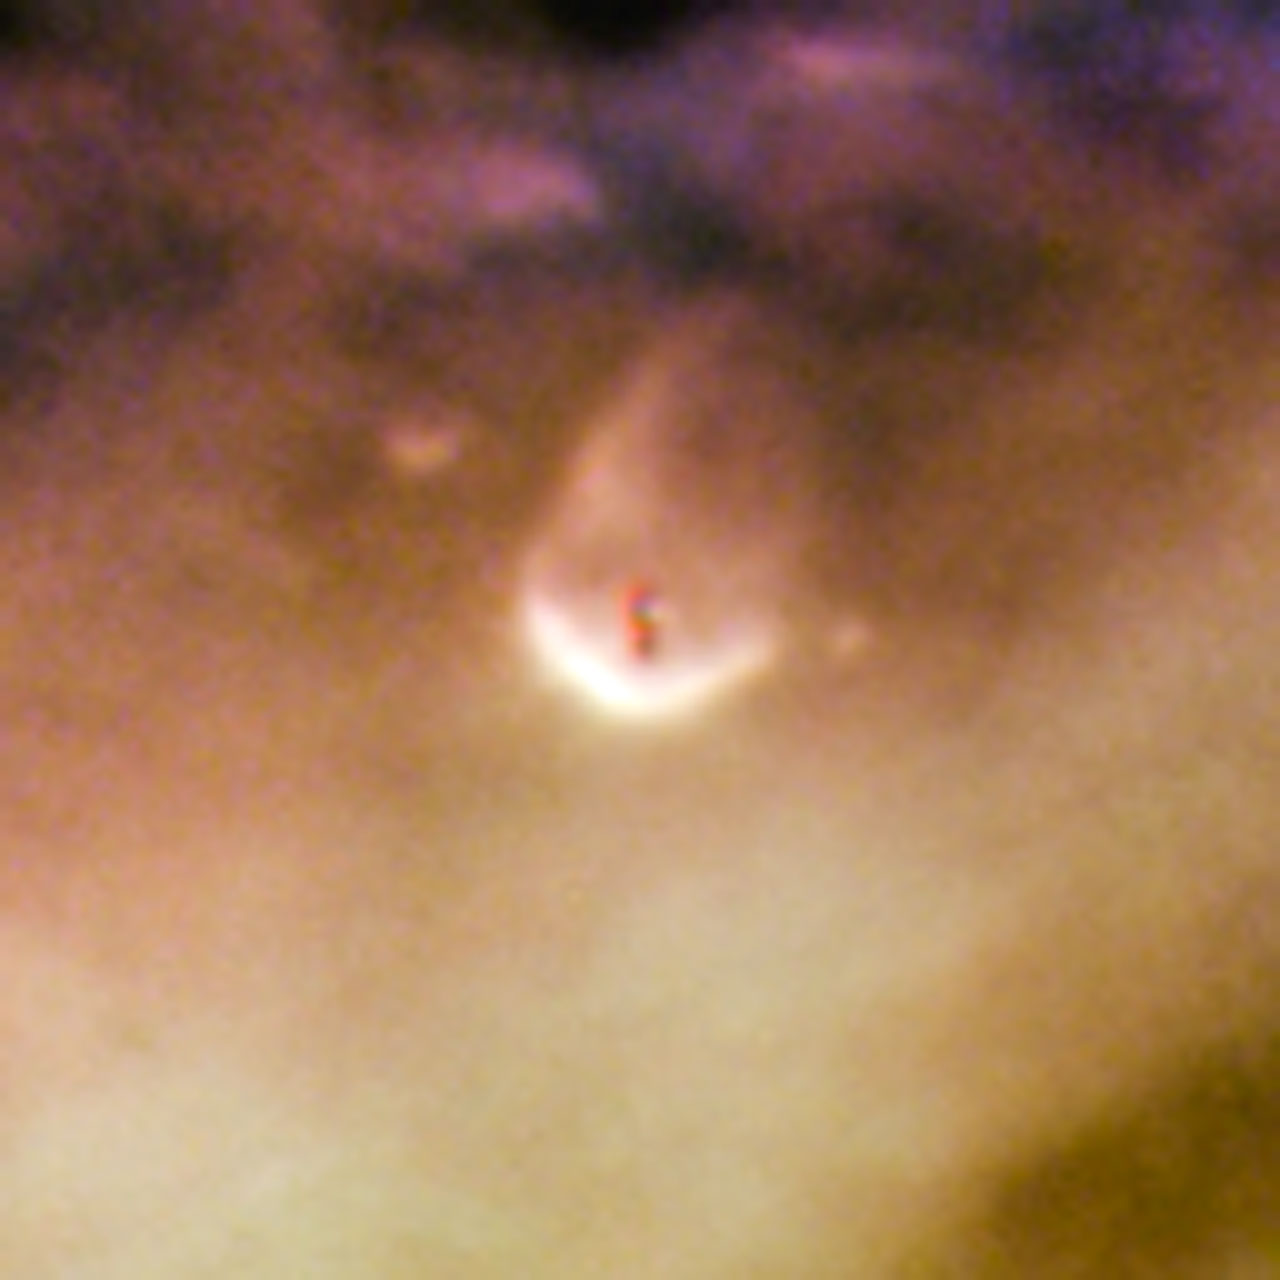 Born in beauty: Proplyds in the Orion Nebula (w/ Video)